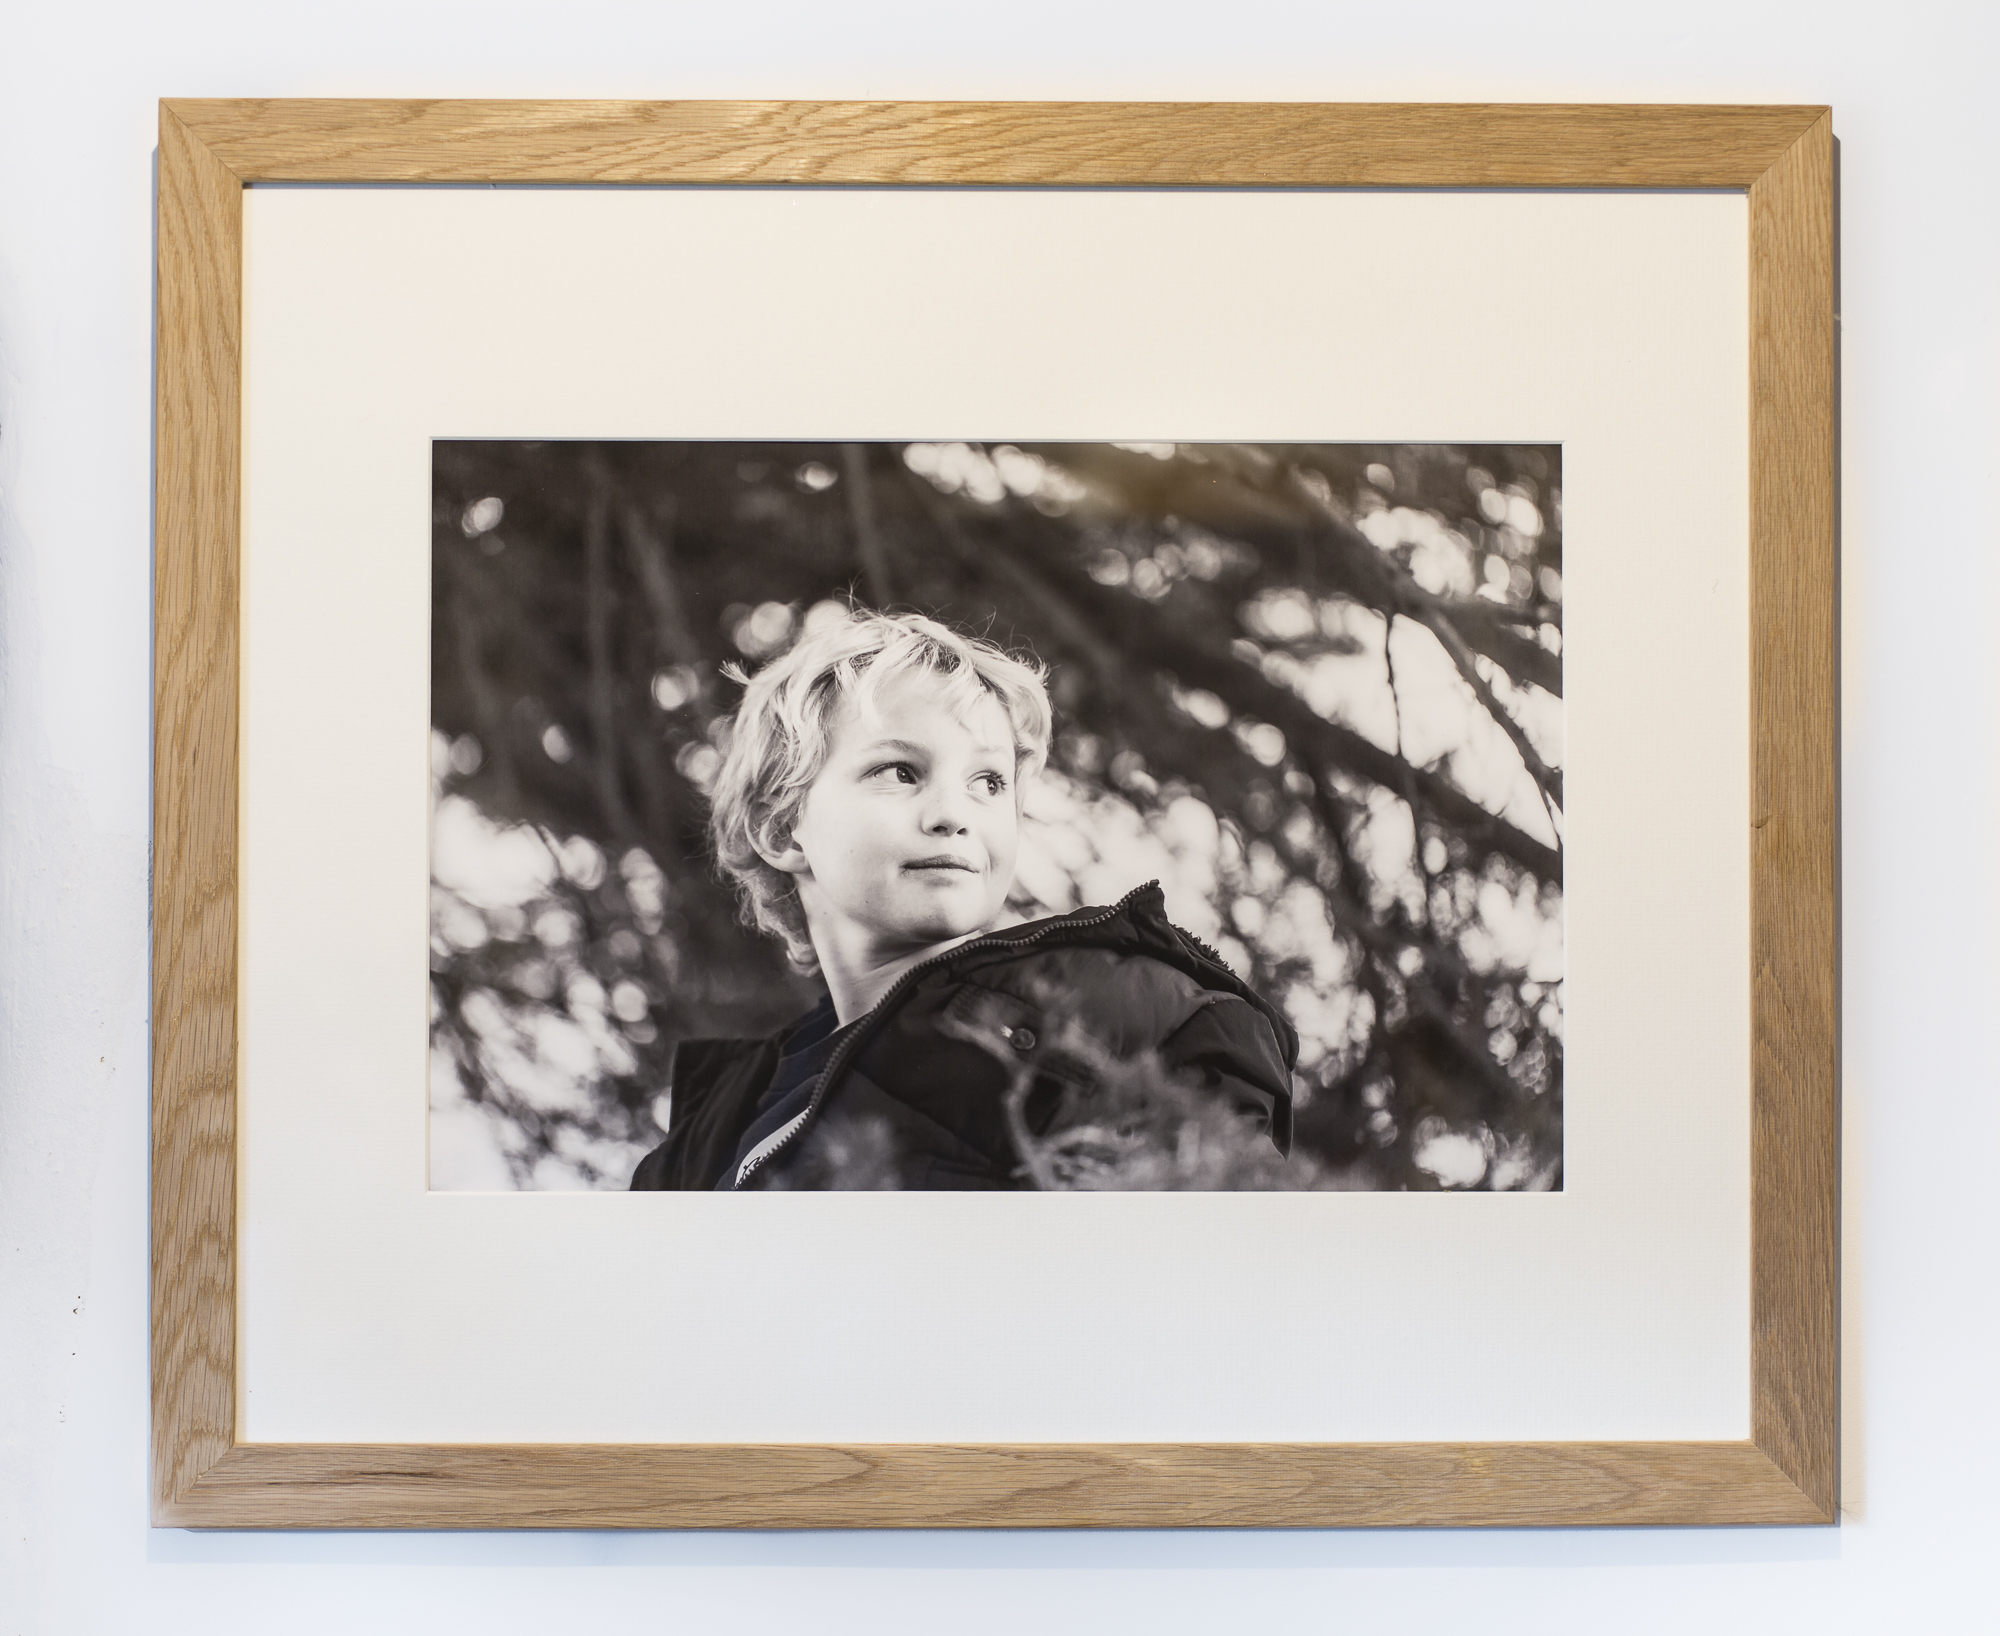 18x12 fine art print on Hahnemuhle cotton rag, in classic 24x20 oak frame with single mount (double mounts also available): from £125